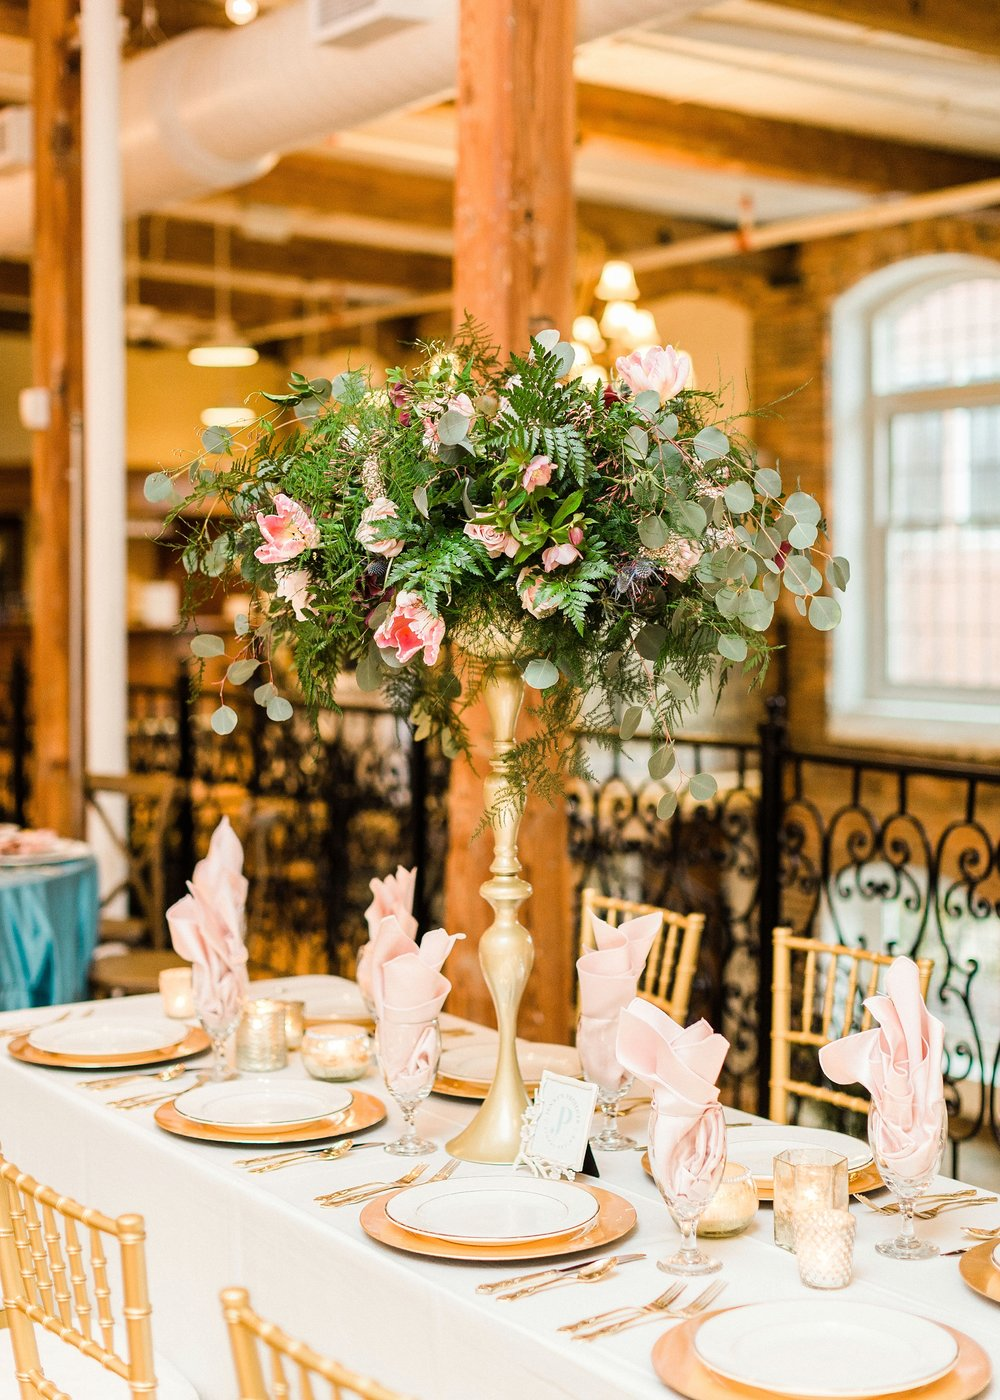 Photo by Annie Timmons Photography, Florals by Jenny's Projects, Linens & Table Settings by Party Reflections